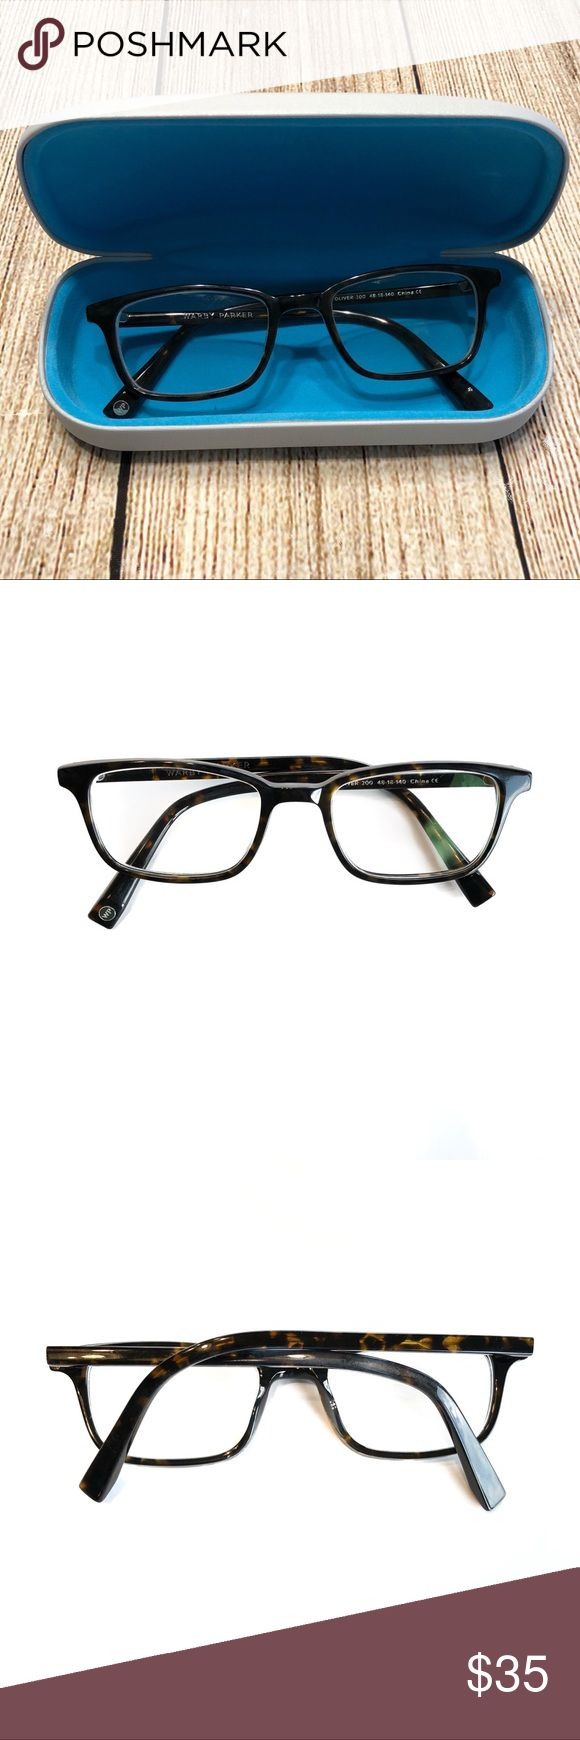 542cf5e66a The 65 best Warby Parker images on Pinterest